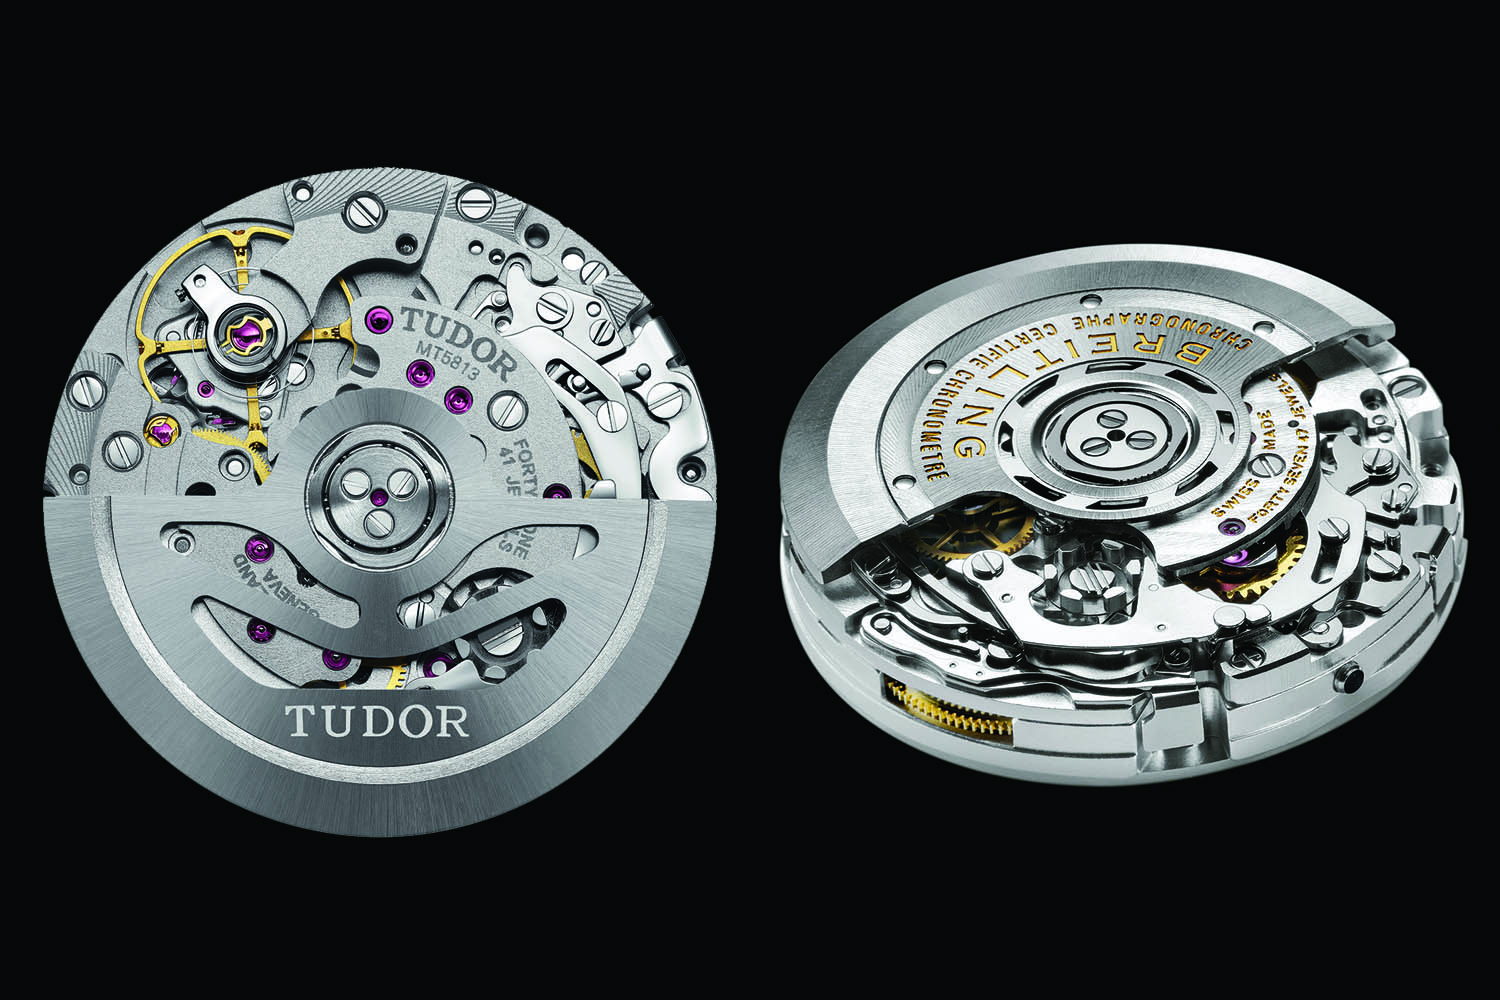 Tudor MT5813 - Breitling B01 Chronograph movement